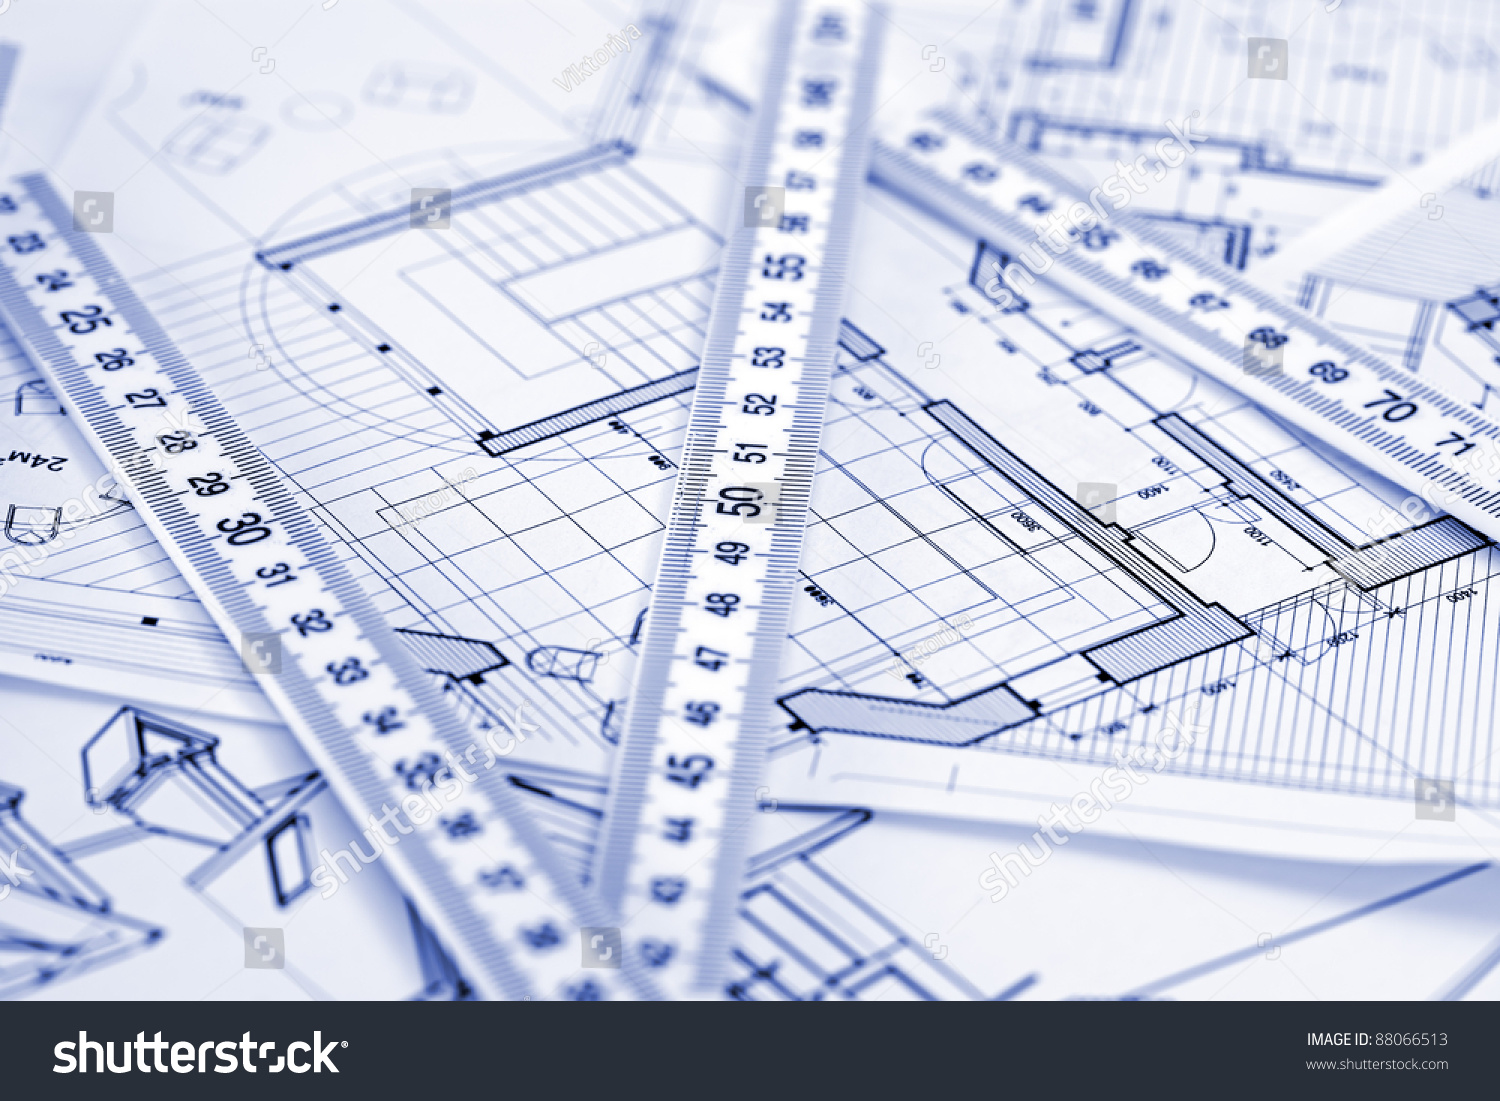 Metric folding ruler architectural drawings modern imagen for Metric homes